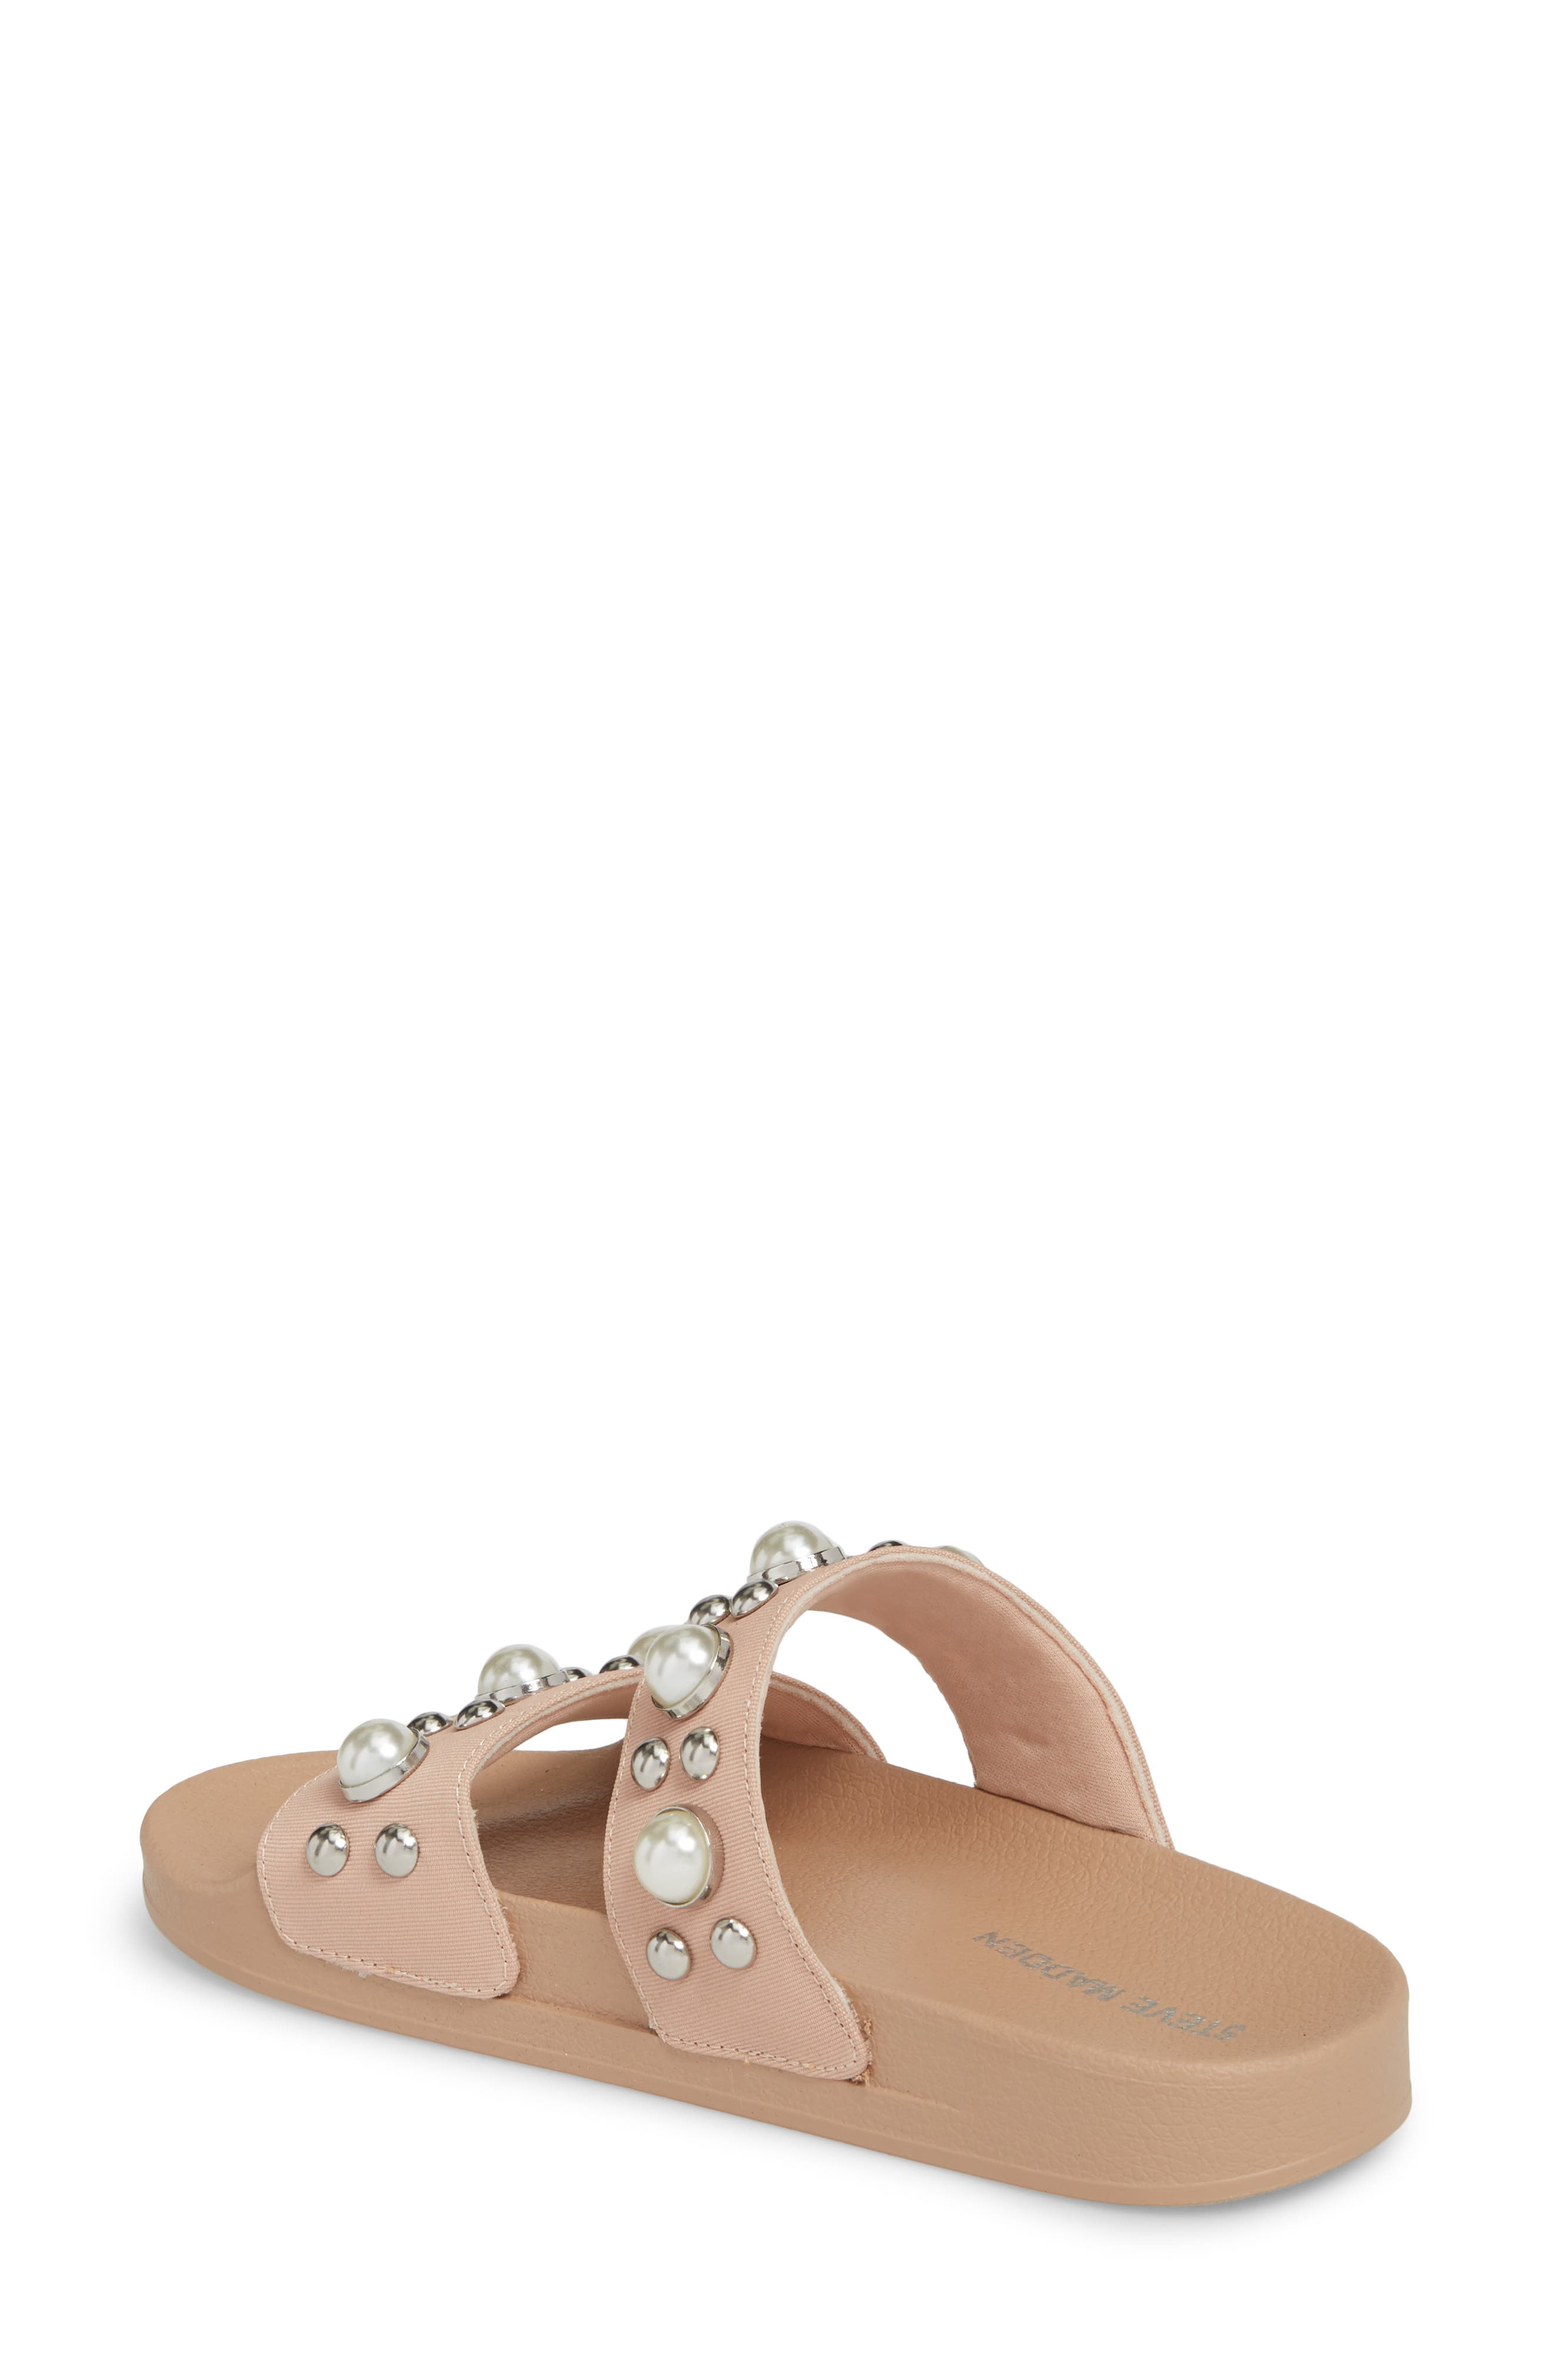 Polite Embellished Slide Sandal,                             Alternate thumbnail 2, color,                             Blush